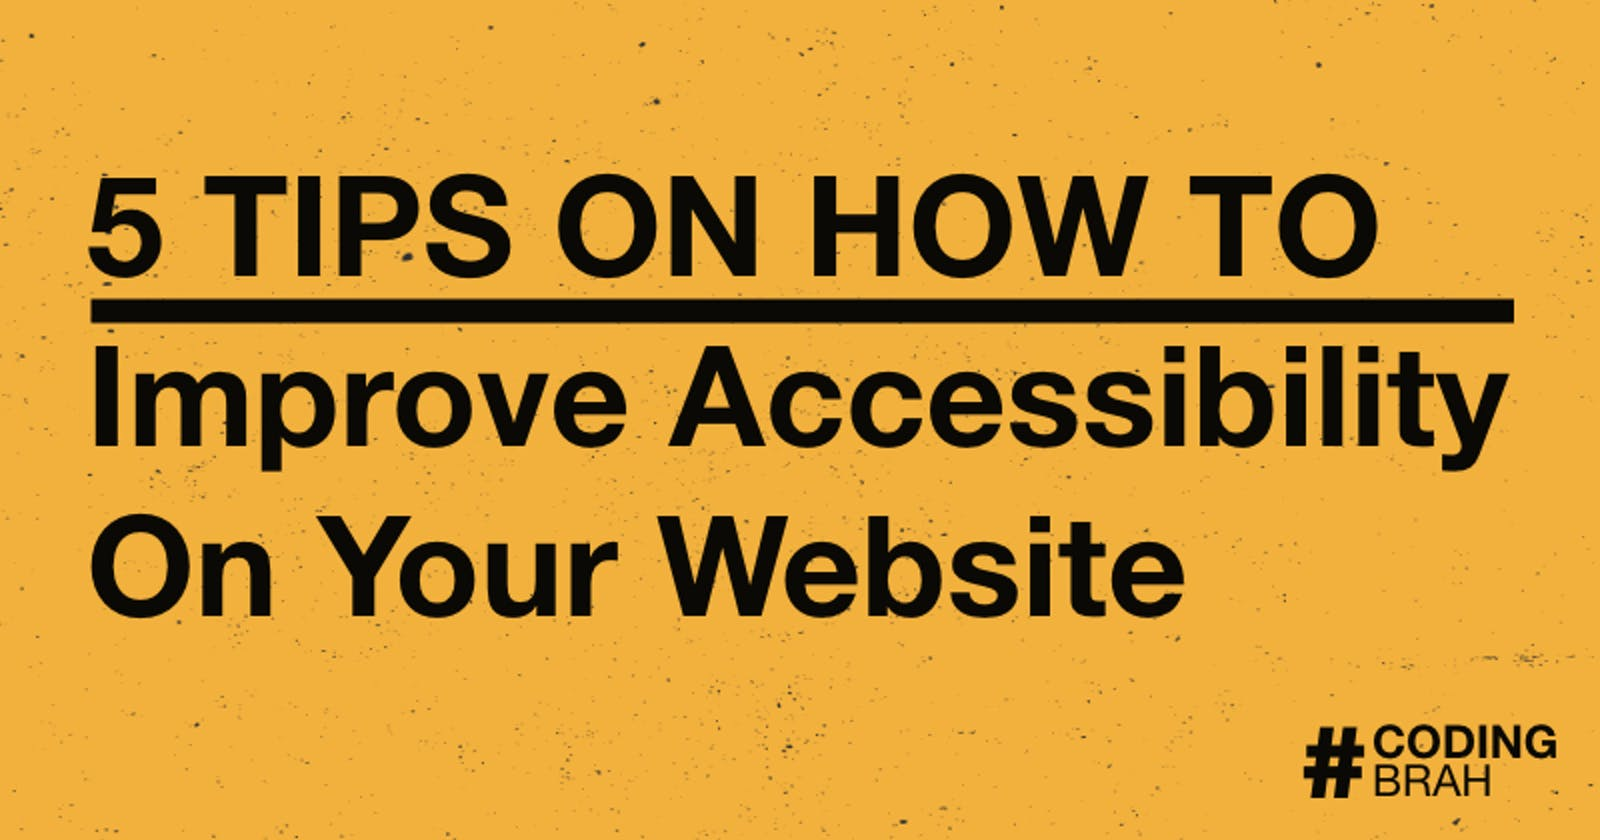 5 Tips On How To Improve Accessibility On Your Website